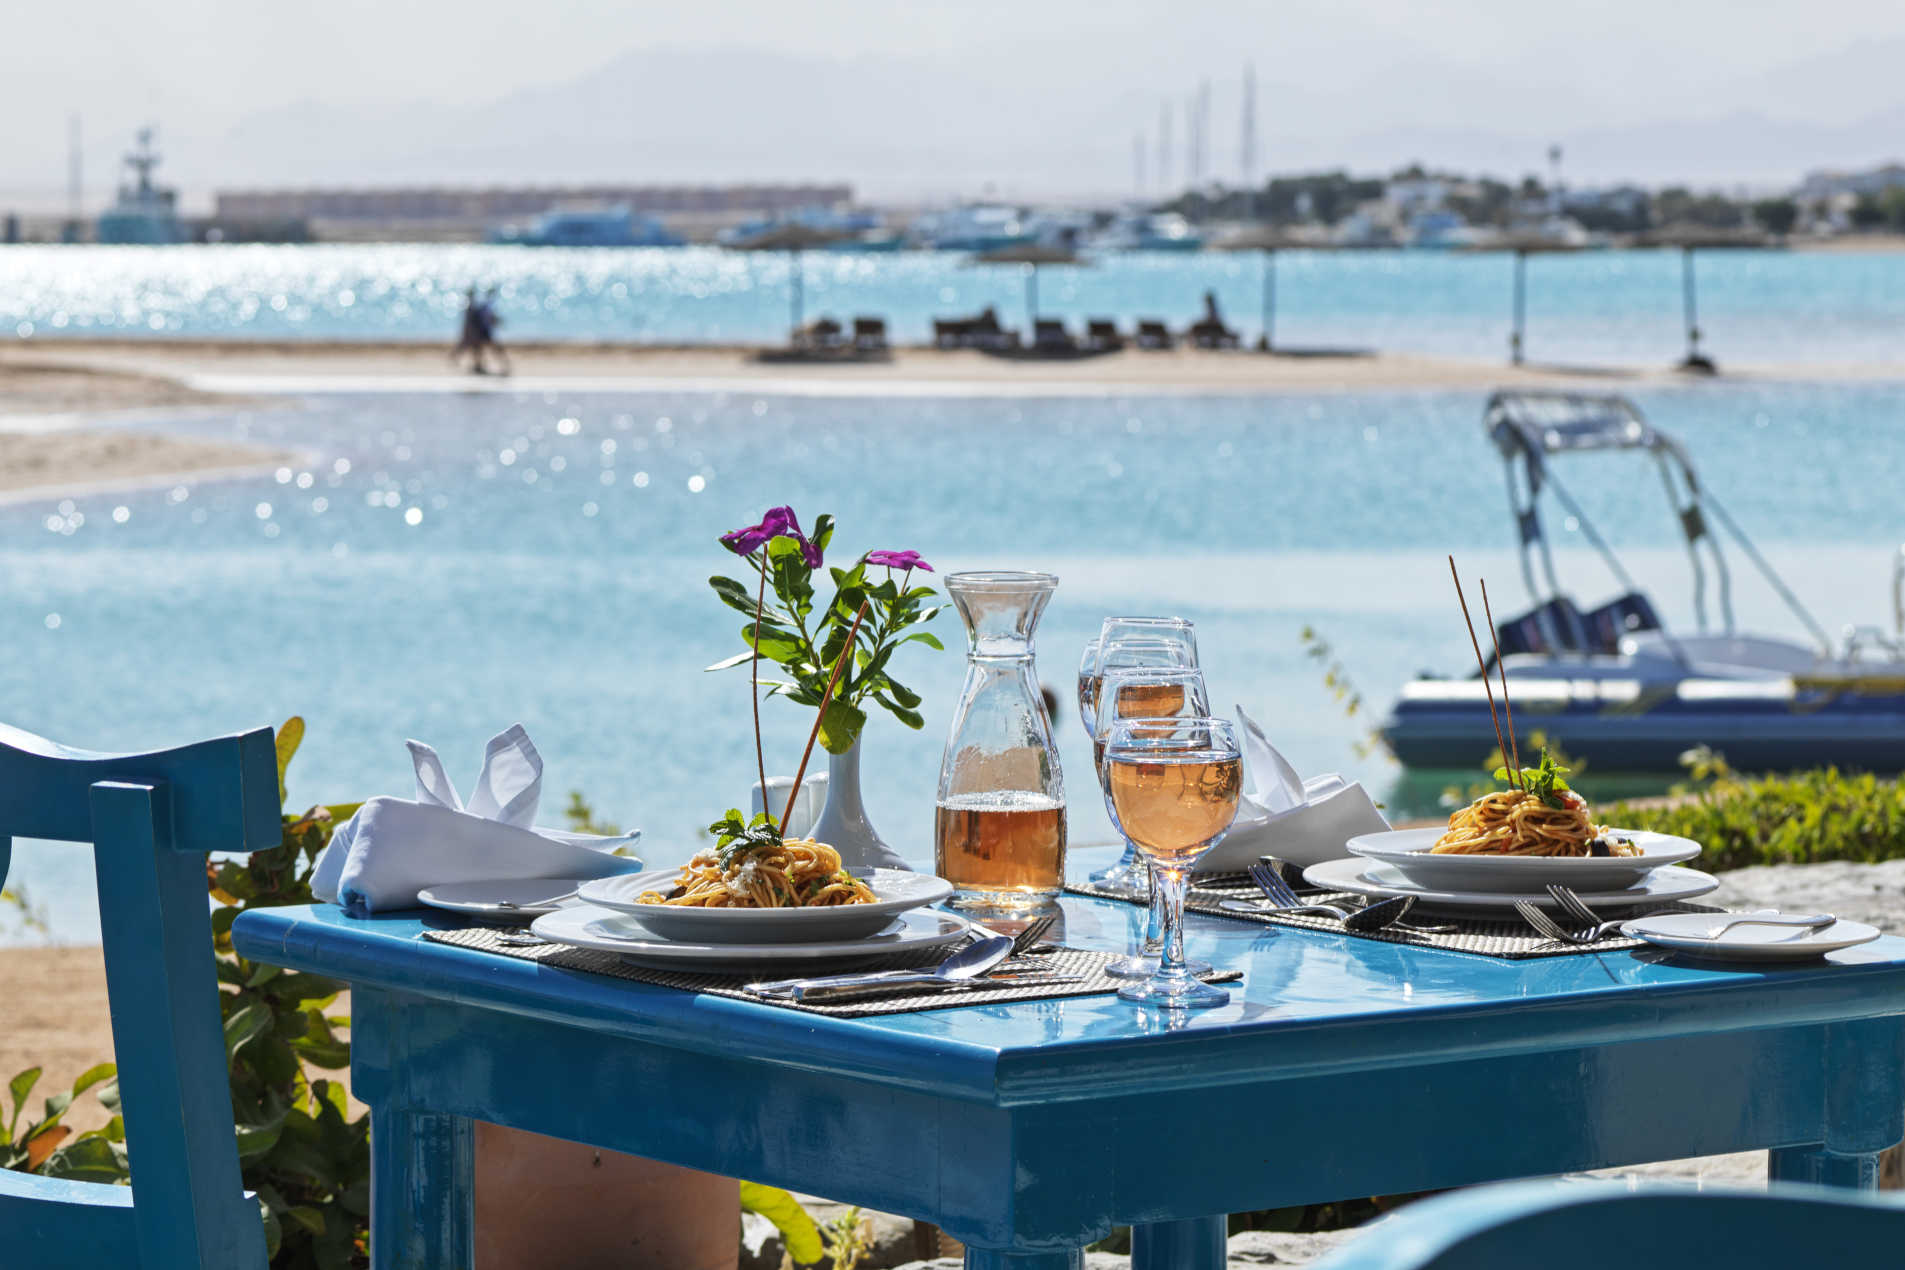 Dinning with Red Sea view in El Gouna Labranda Club Paradisio Hotel while enjoying the fresh breeze at Morgan's Restaurant